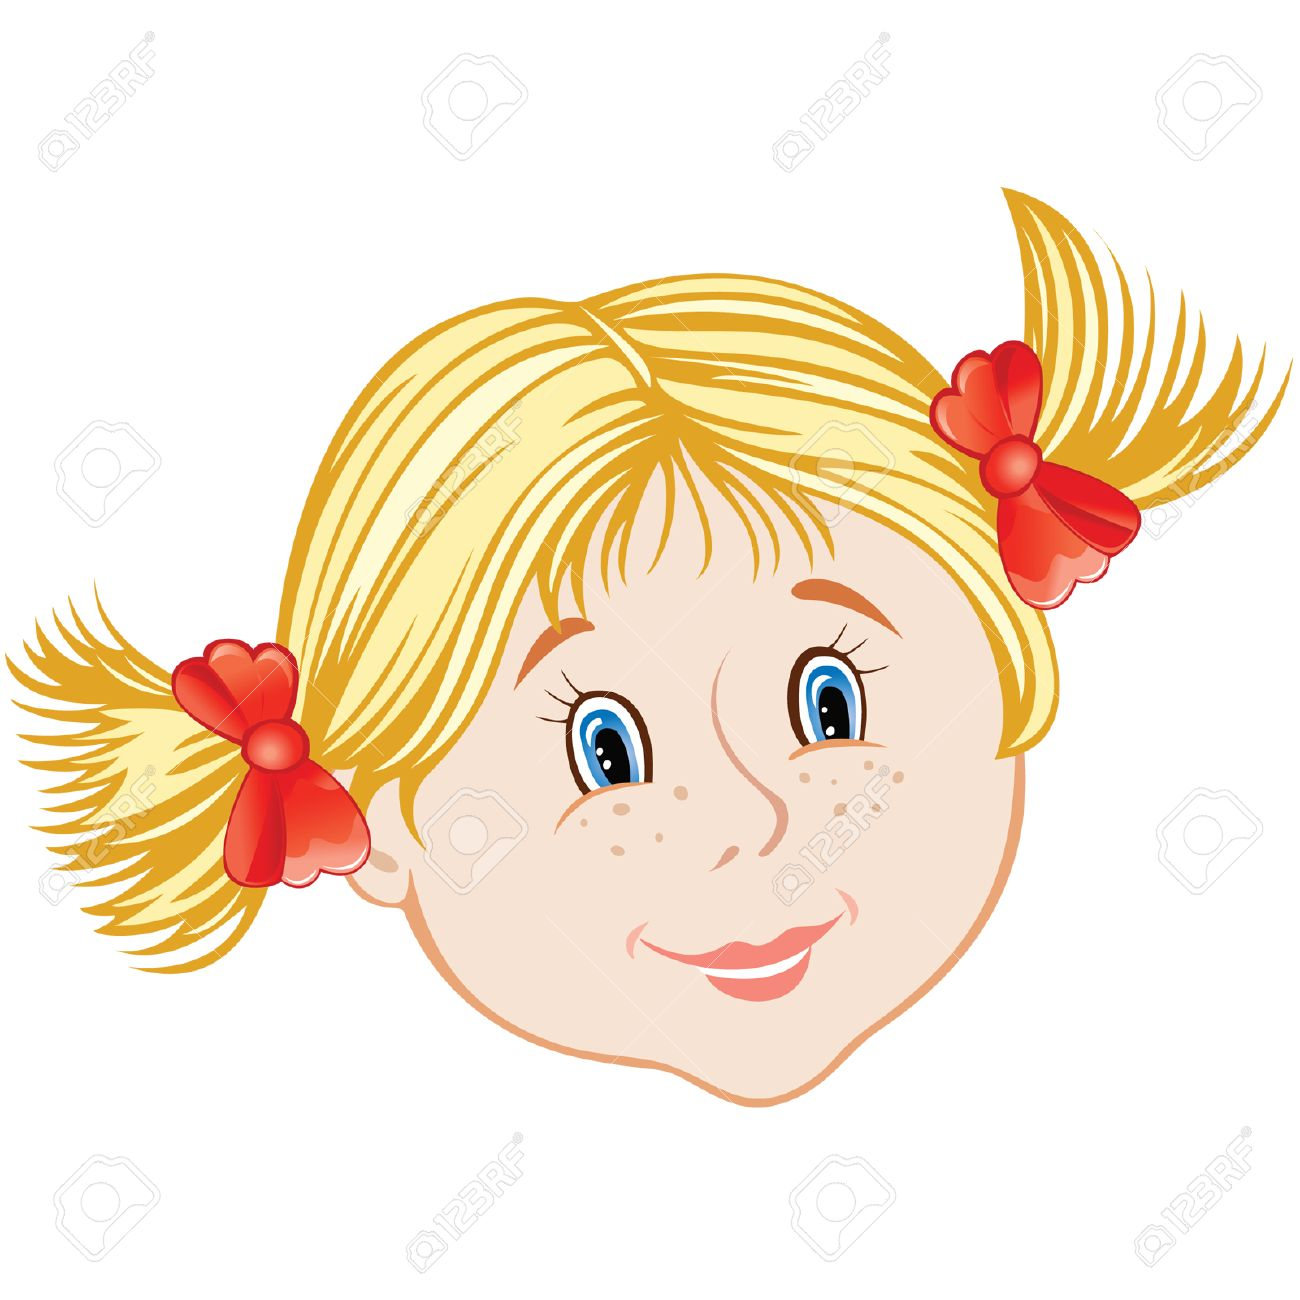 cartoon smiling face of little girl.